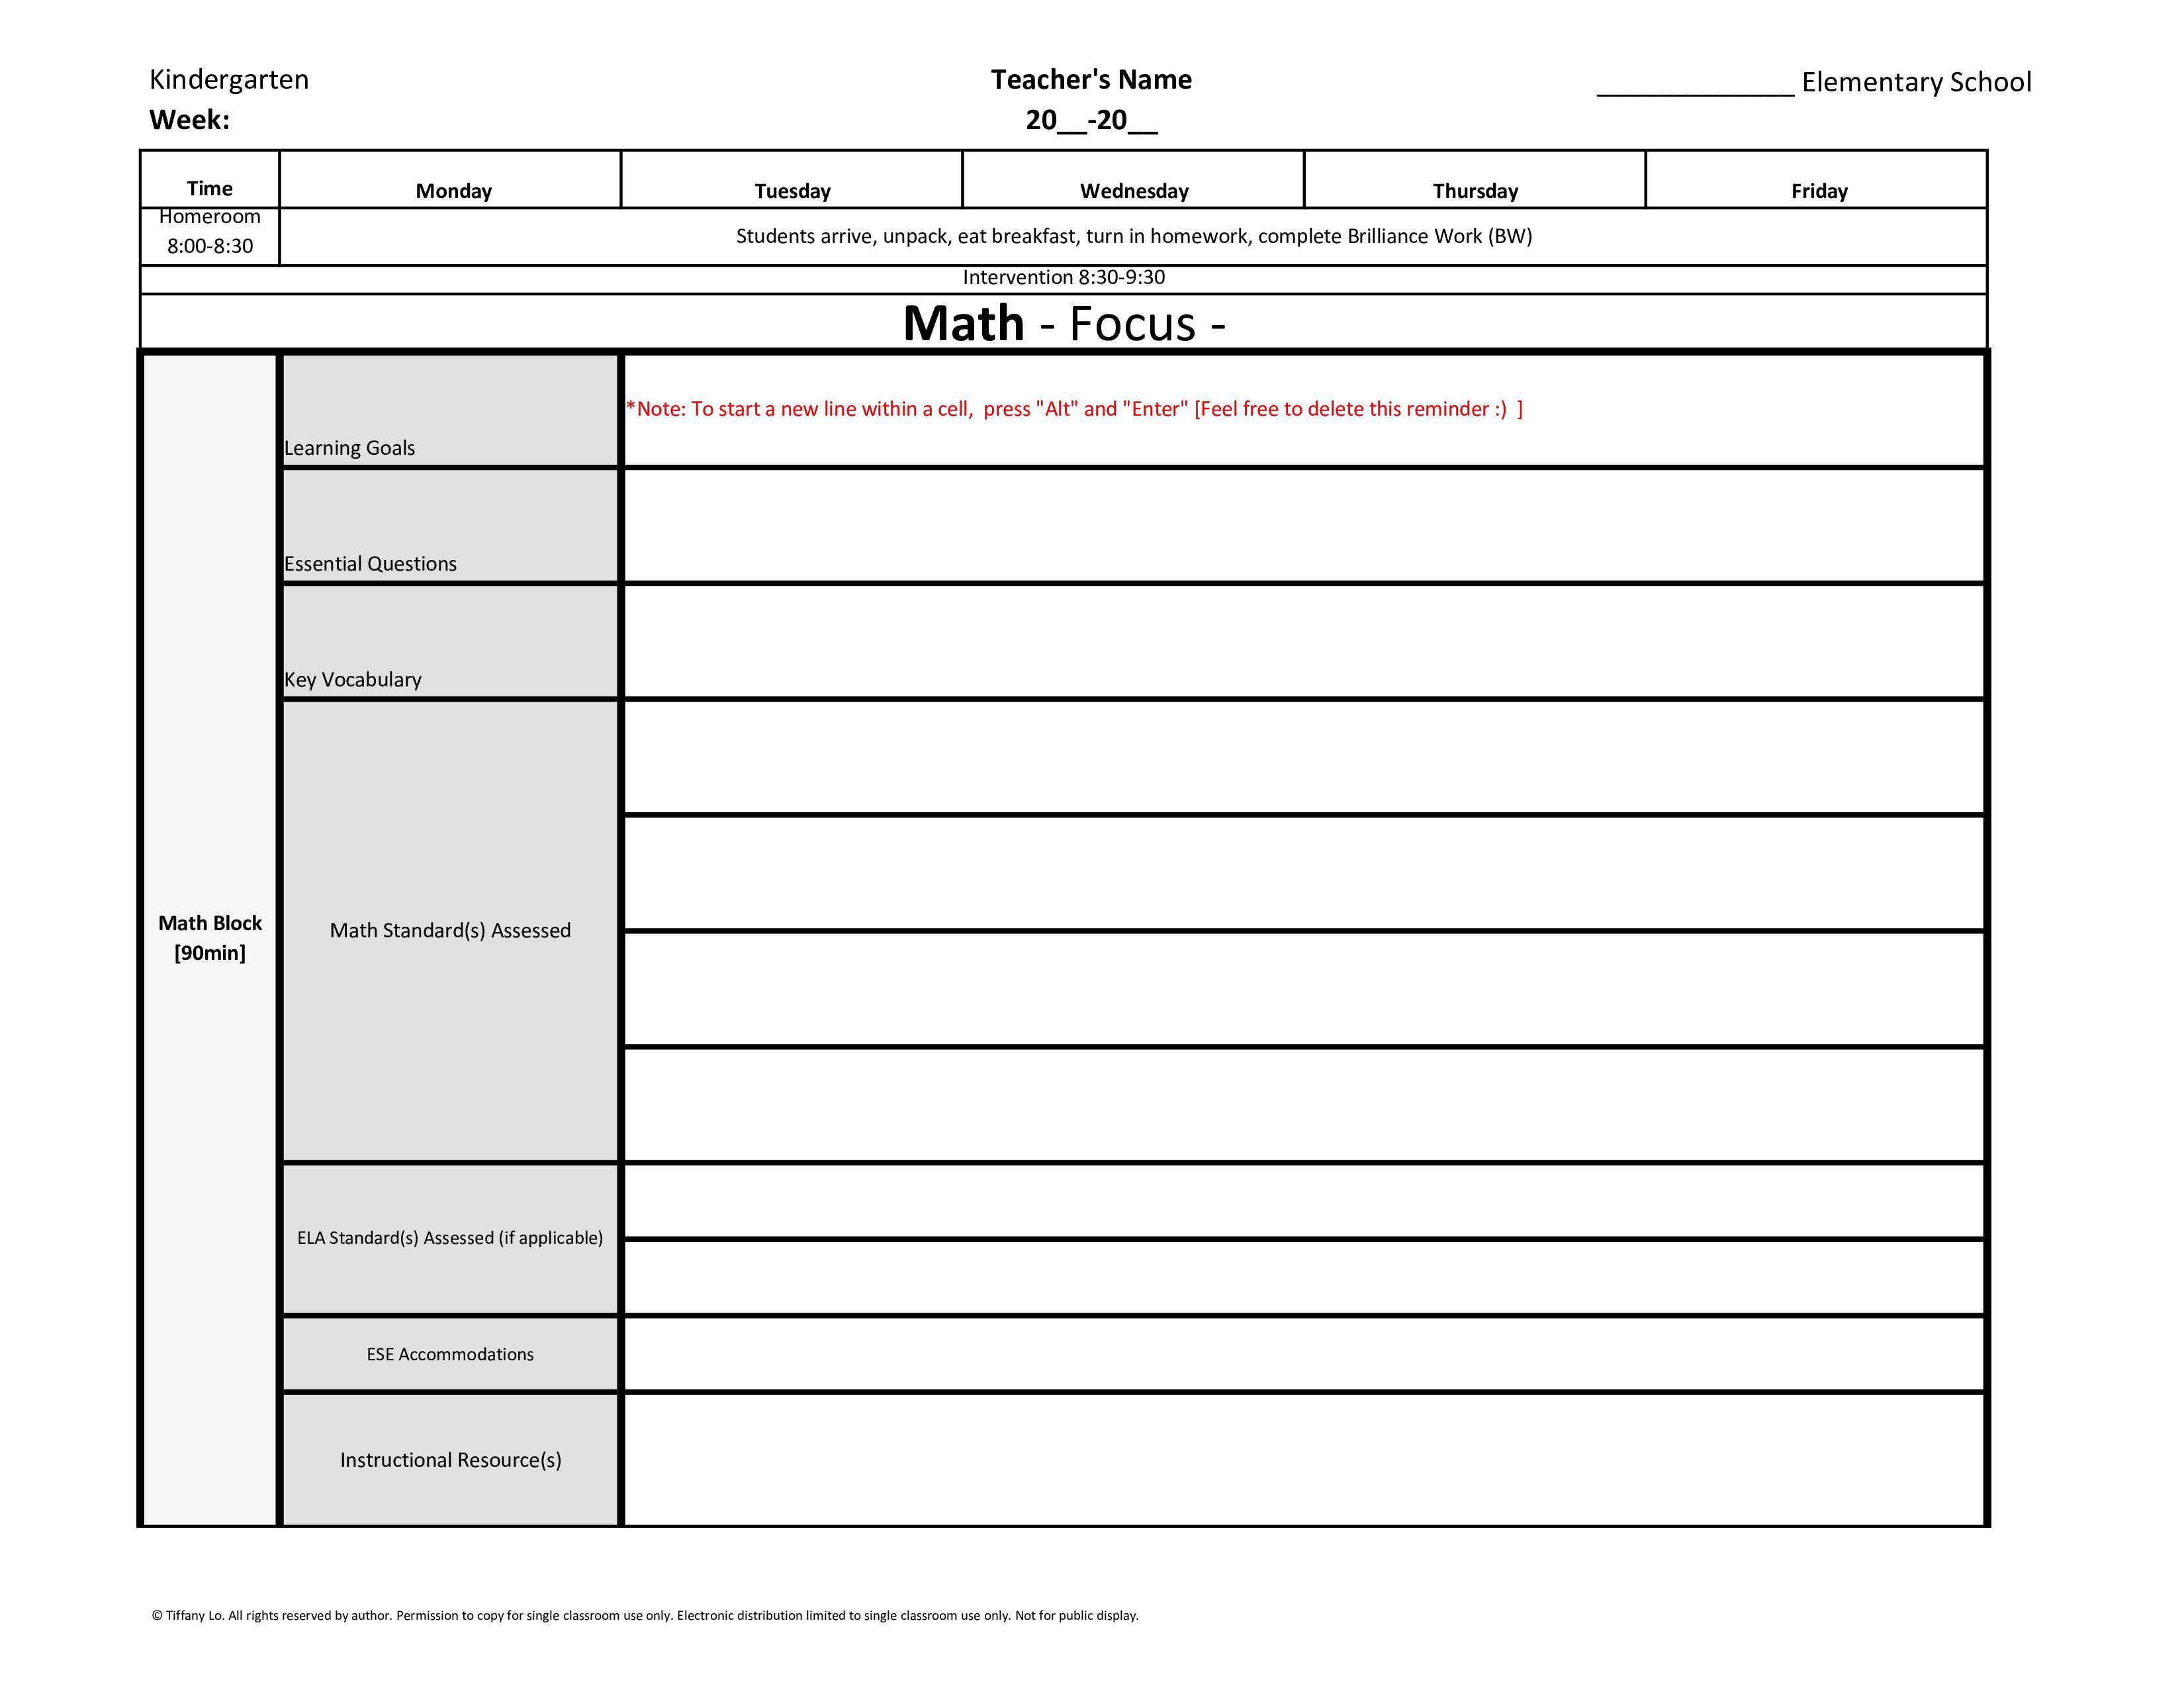 003 Awesome Editable Lesson Plan Template Image  Templates For Preschool Word FreeFull